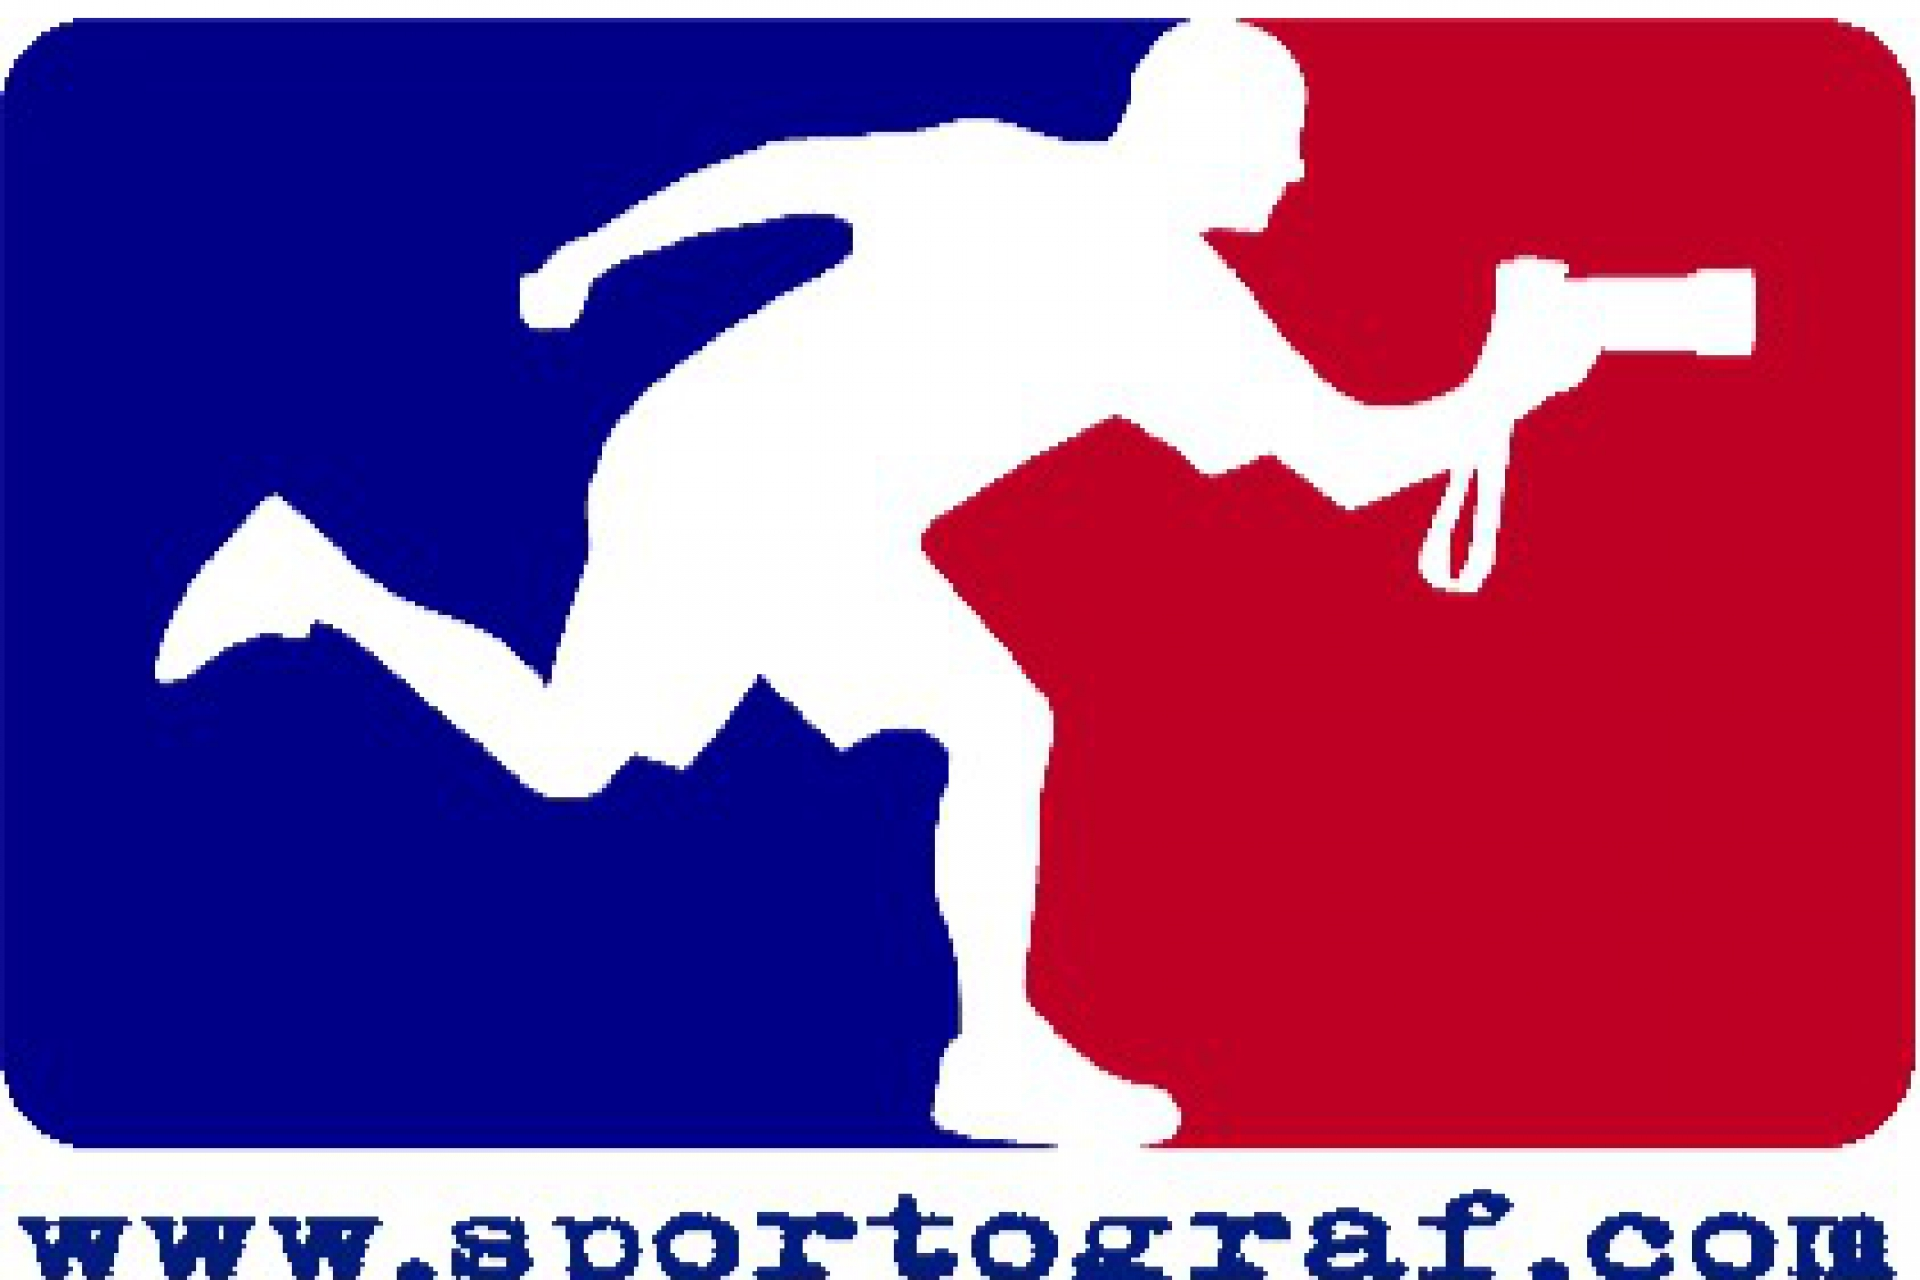 Sportograf will offer the best photographs!